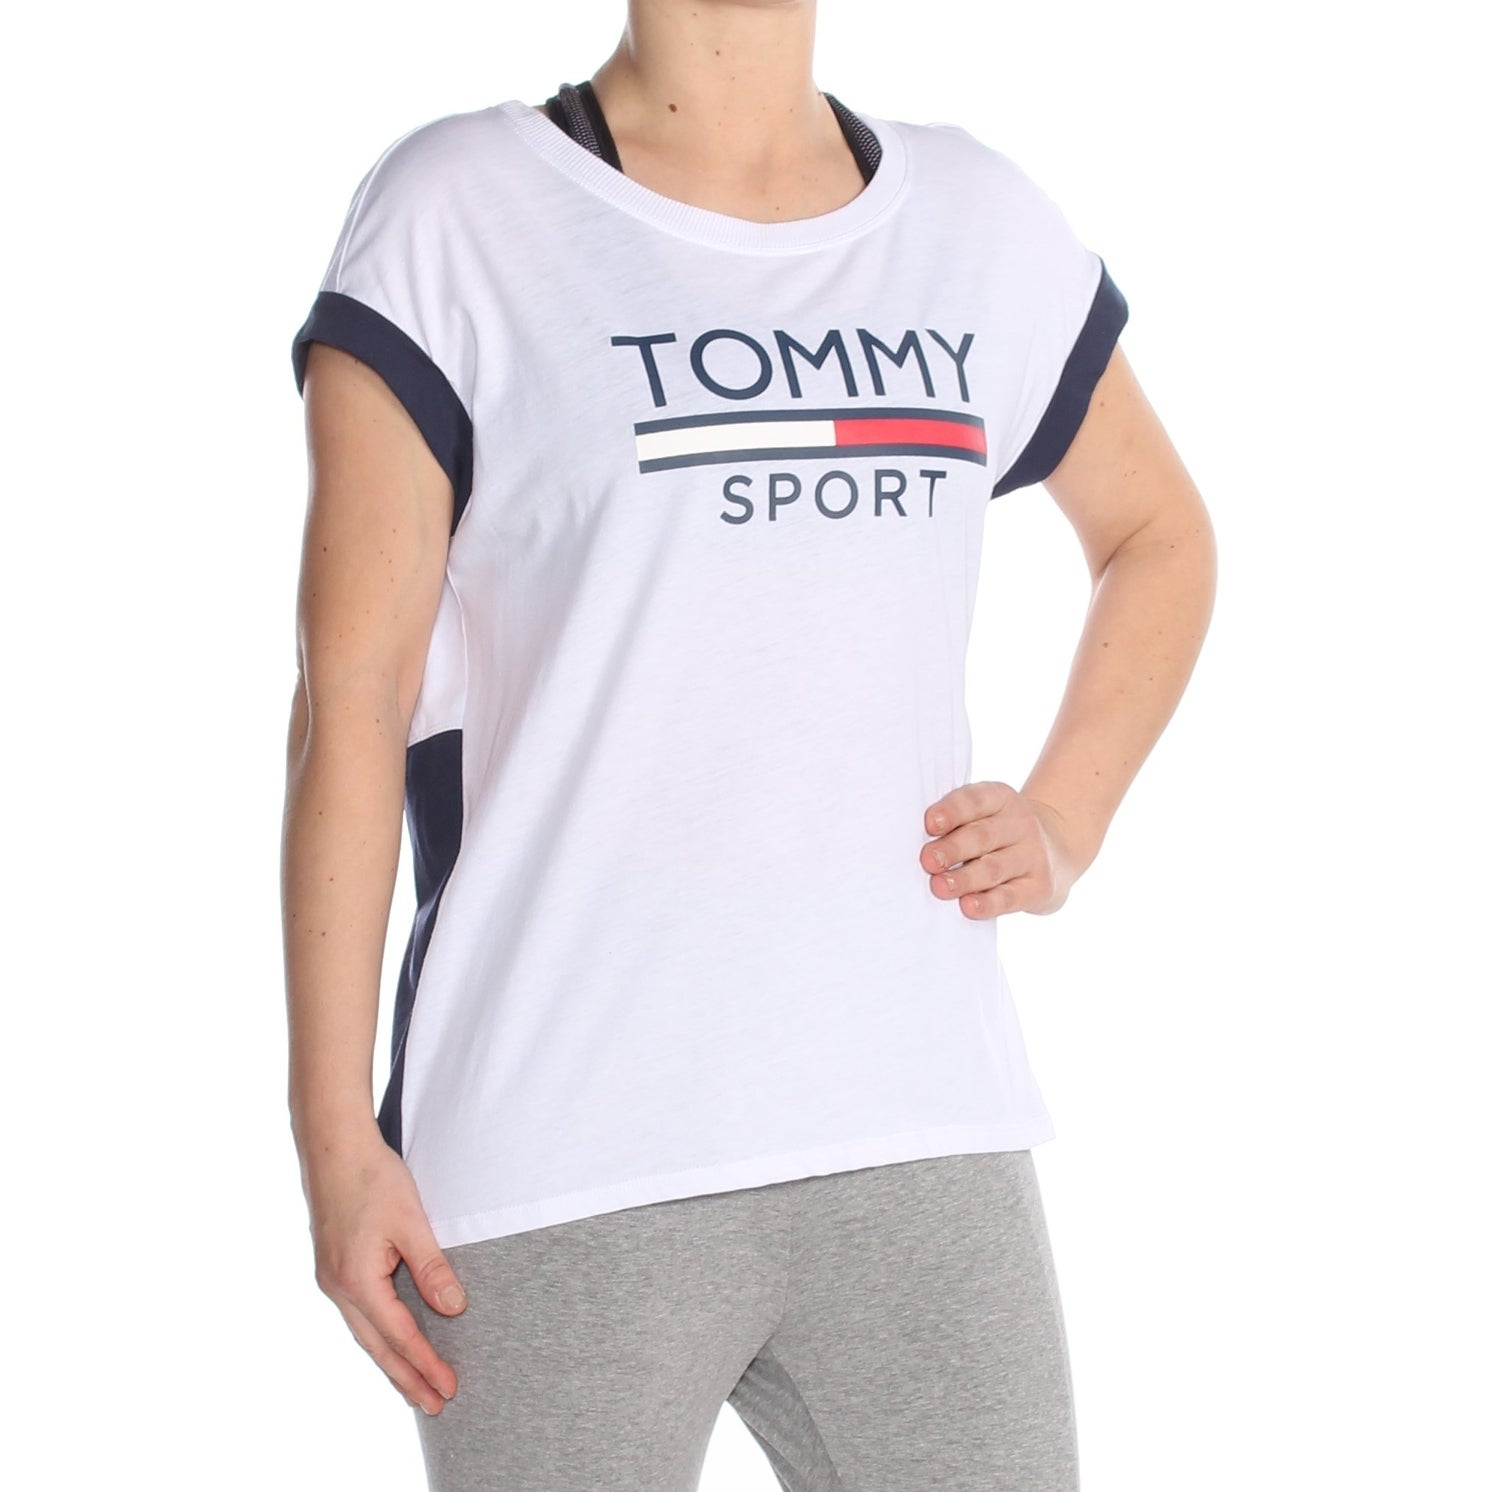 f77d5b92d Shop TOMMY HILFIGER Womens White Printed Logo Short Sleeve T-Shirt Top  Size: S - Free Shipping On Orders Over $45 - Overstock - 27987198